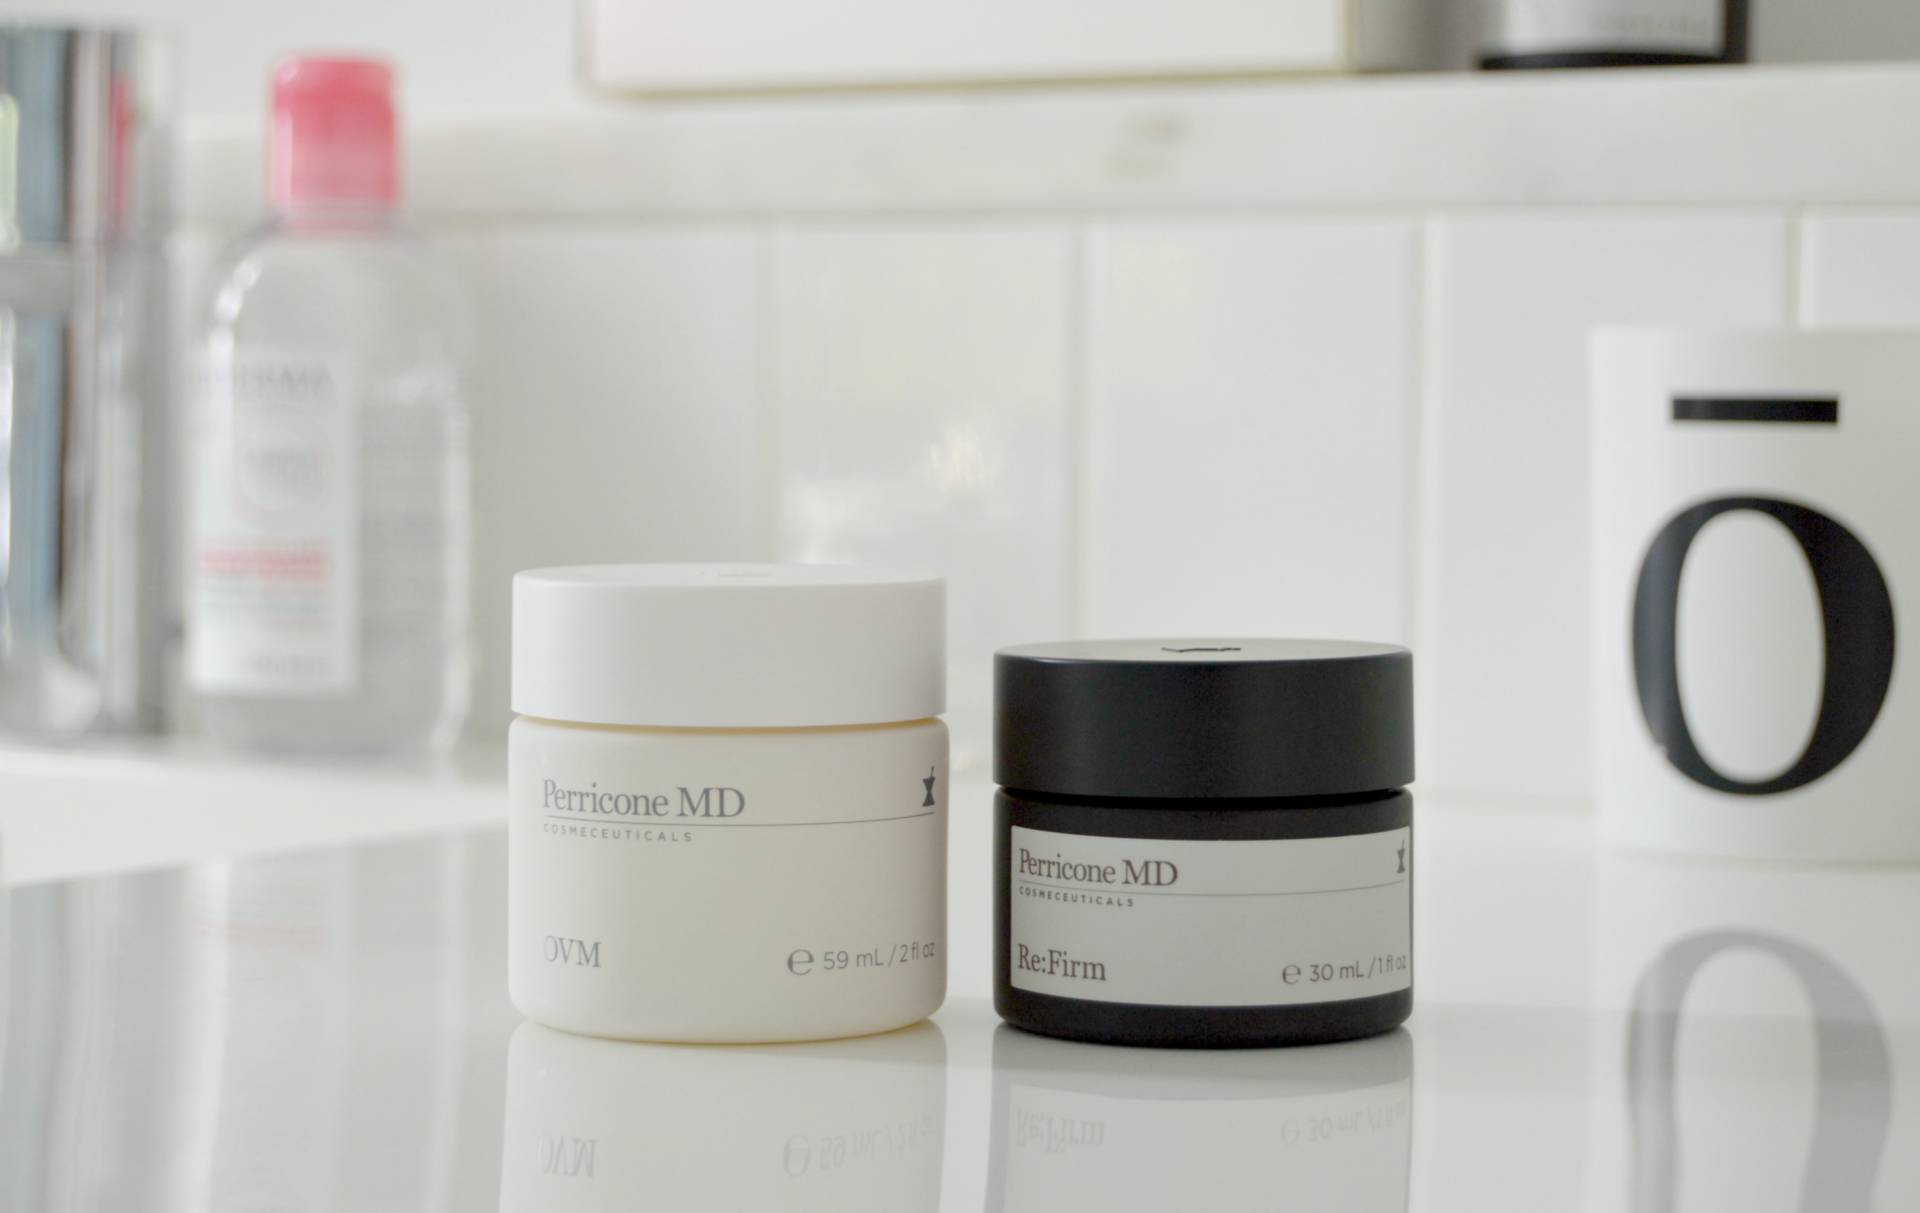 perricone md ovm cream re firm review inhautepursuit